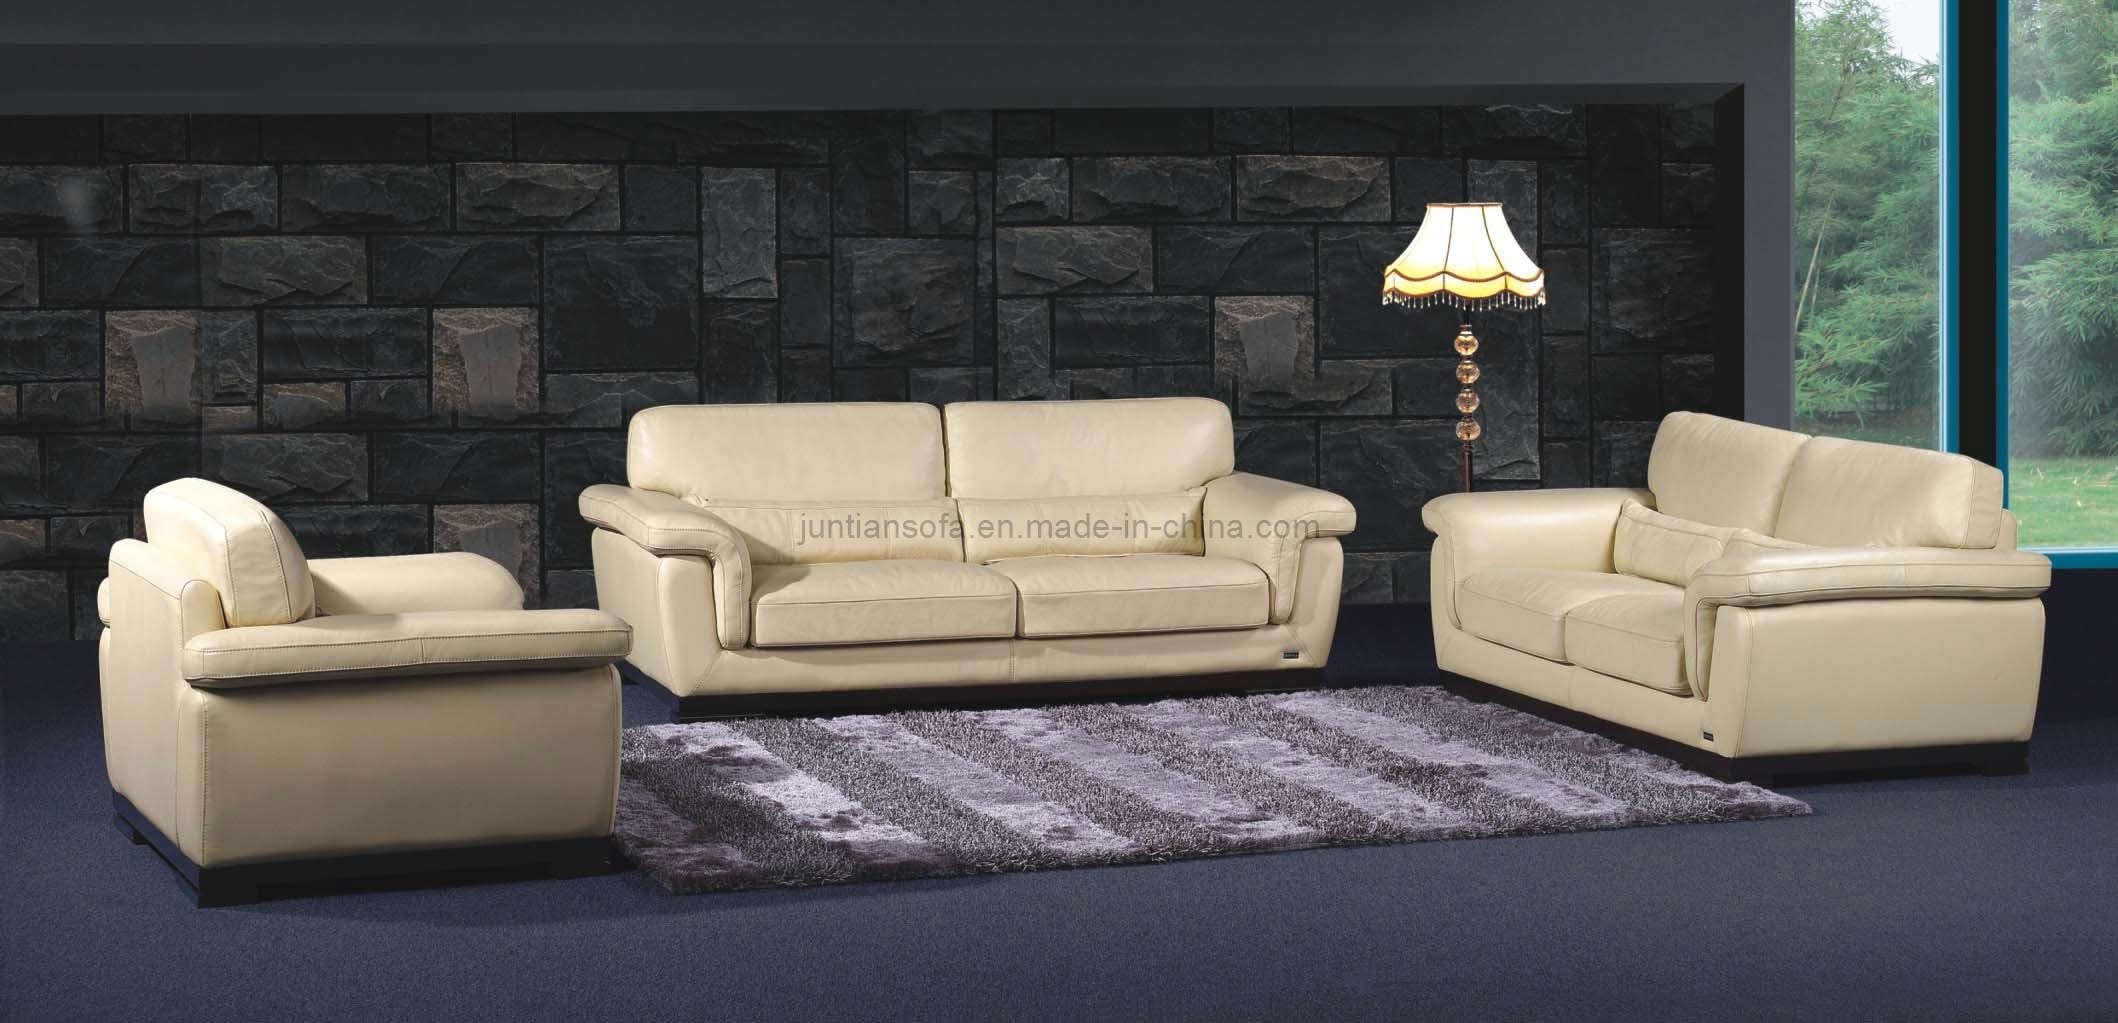 Best Leather Sofa Brands | Roselawnlutheran Within High Quality Leather Sectional (Image 4 of 20)